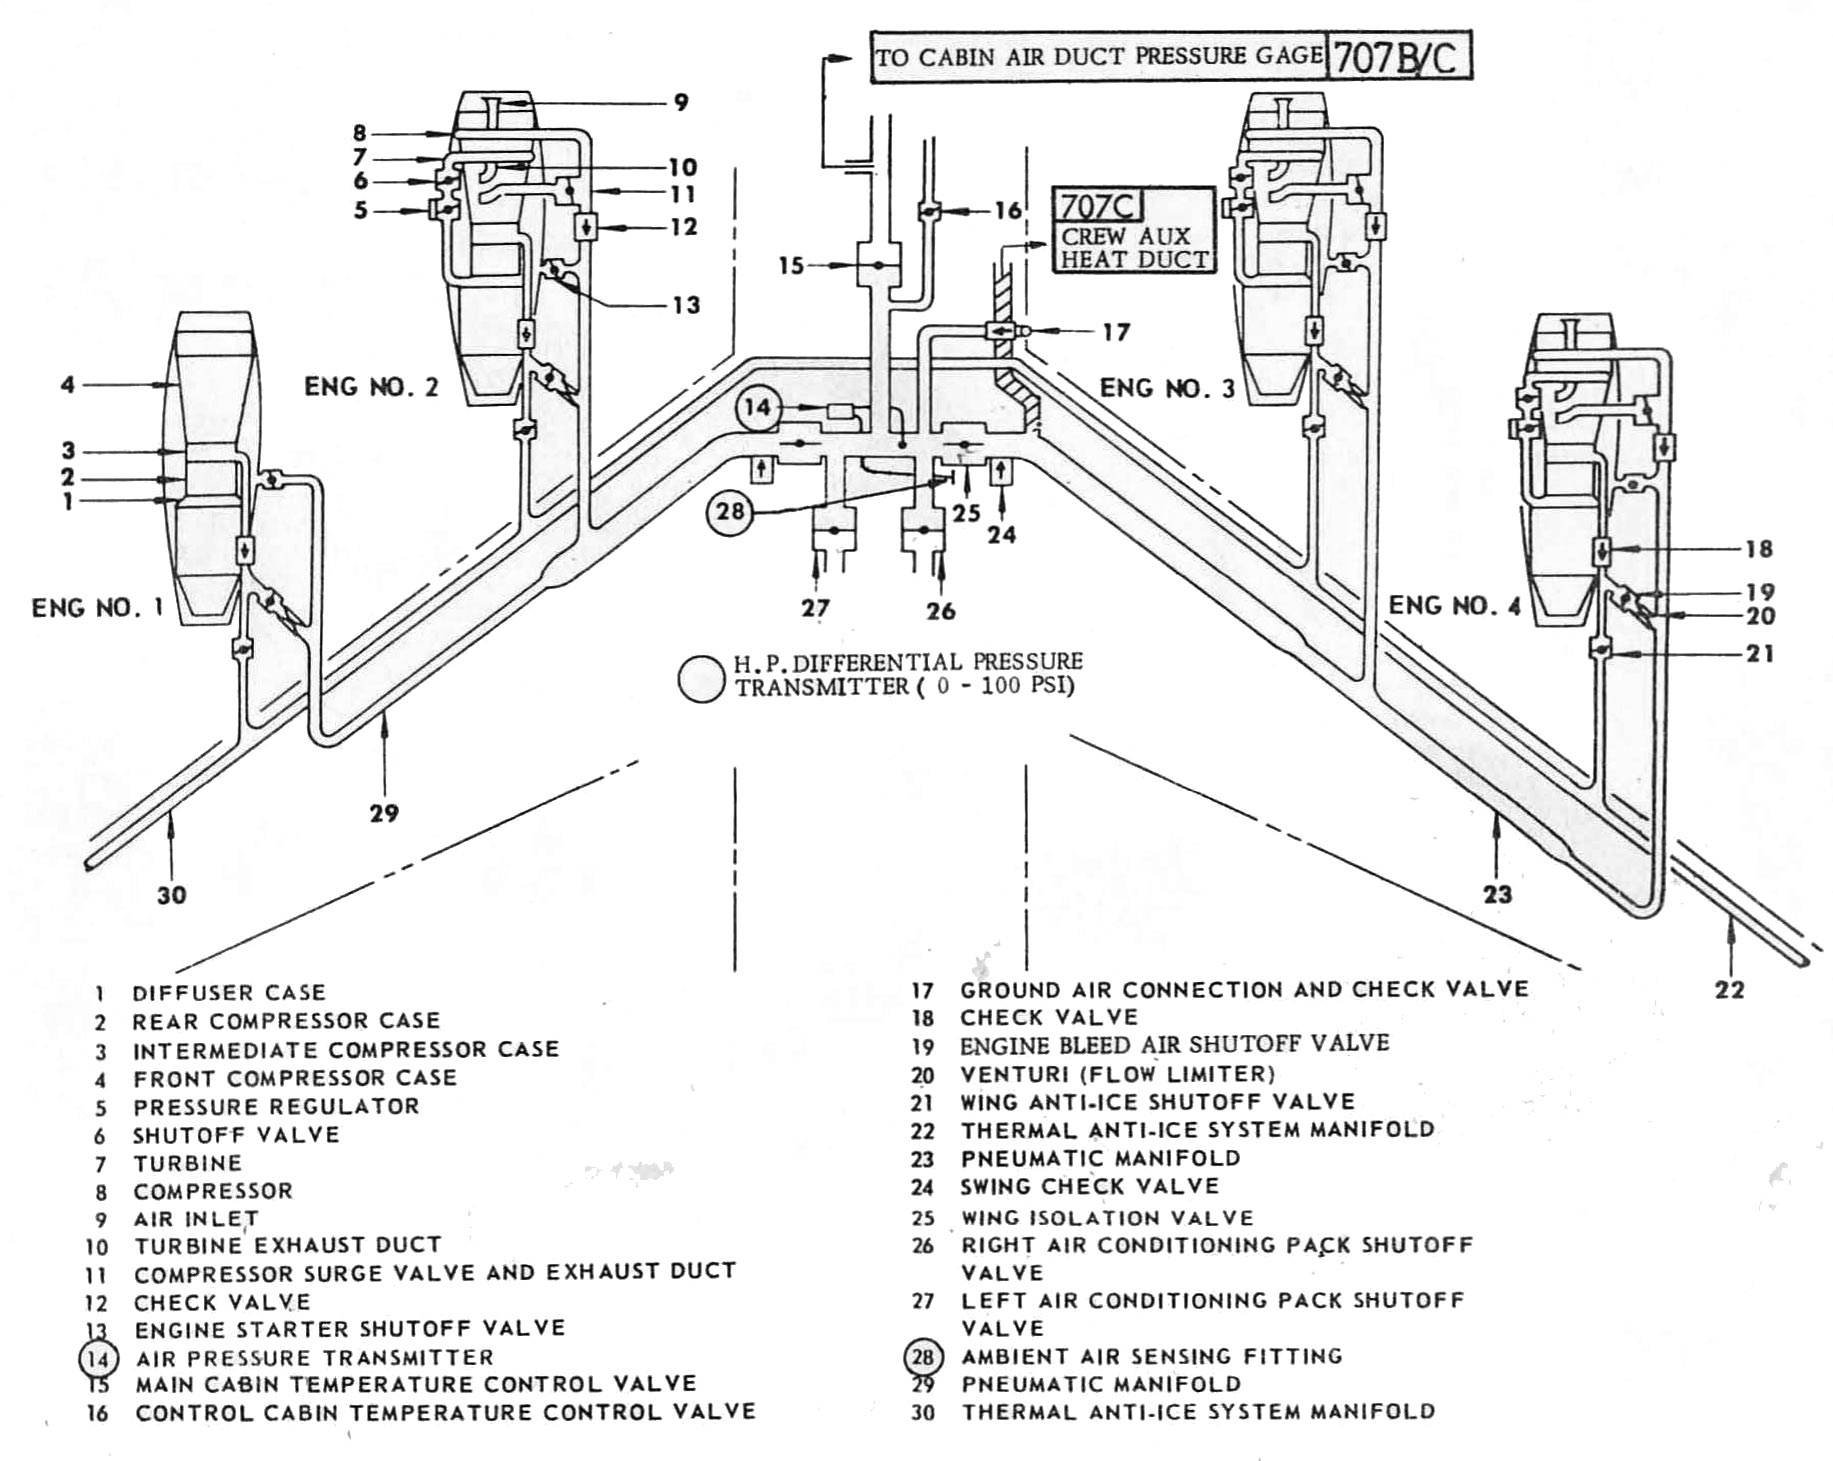 Pneumatic System – The Boeing 707 Experience